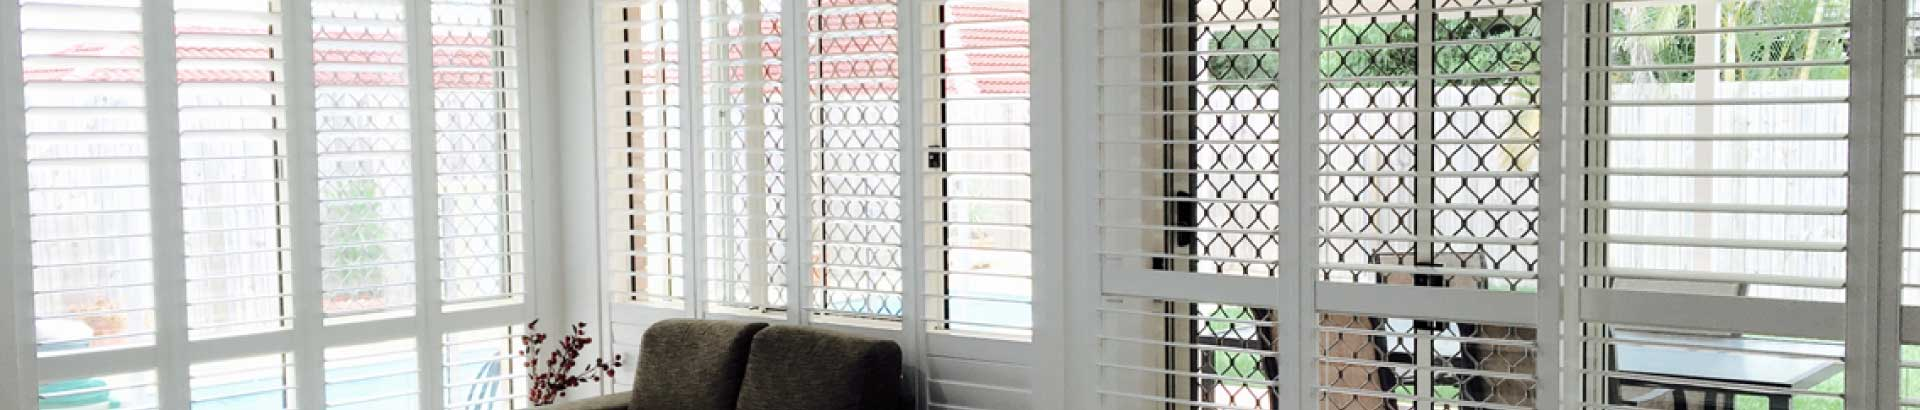 Al's Blinds brings Australian made Polyshield Shutters to the Sunshine Coast